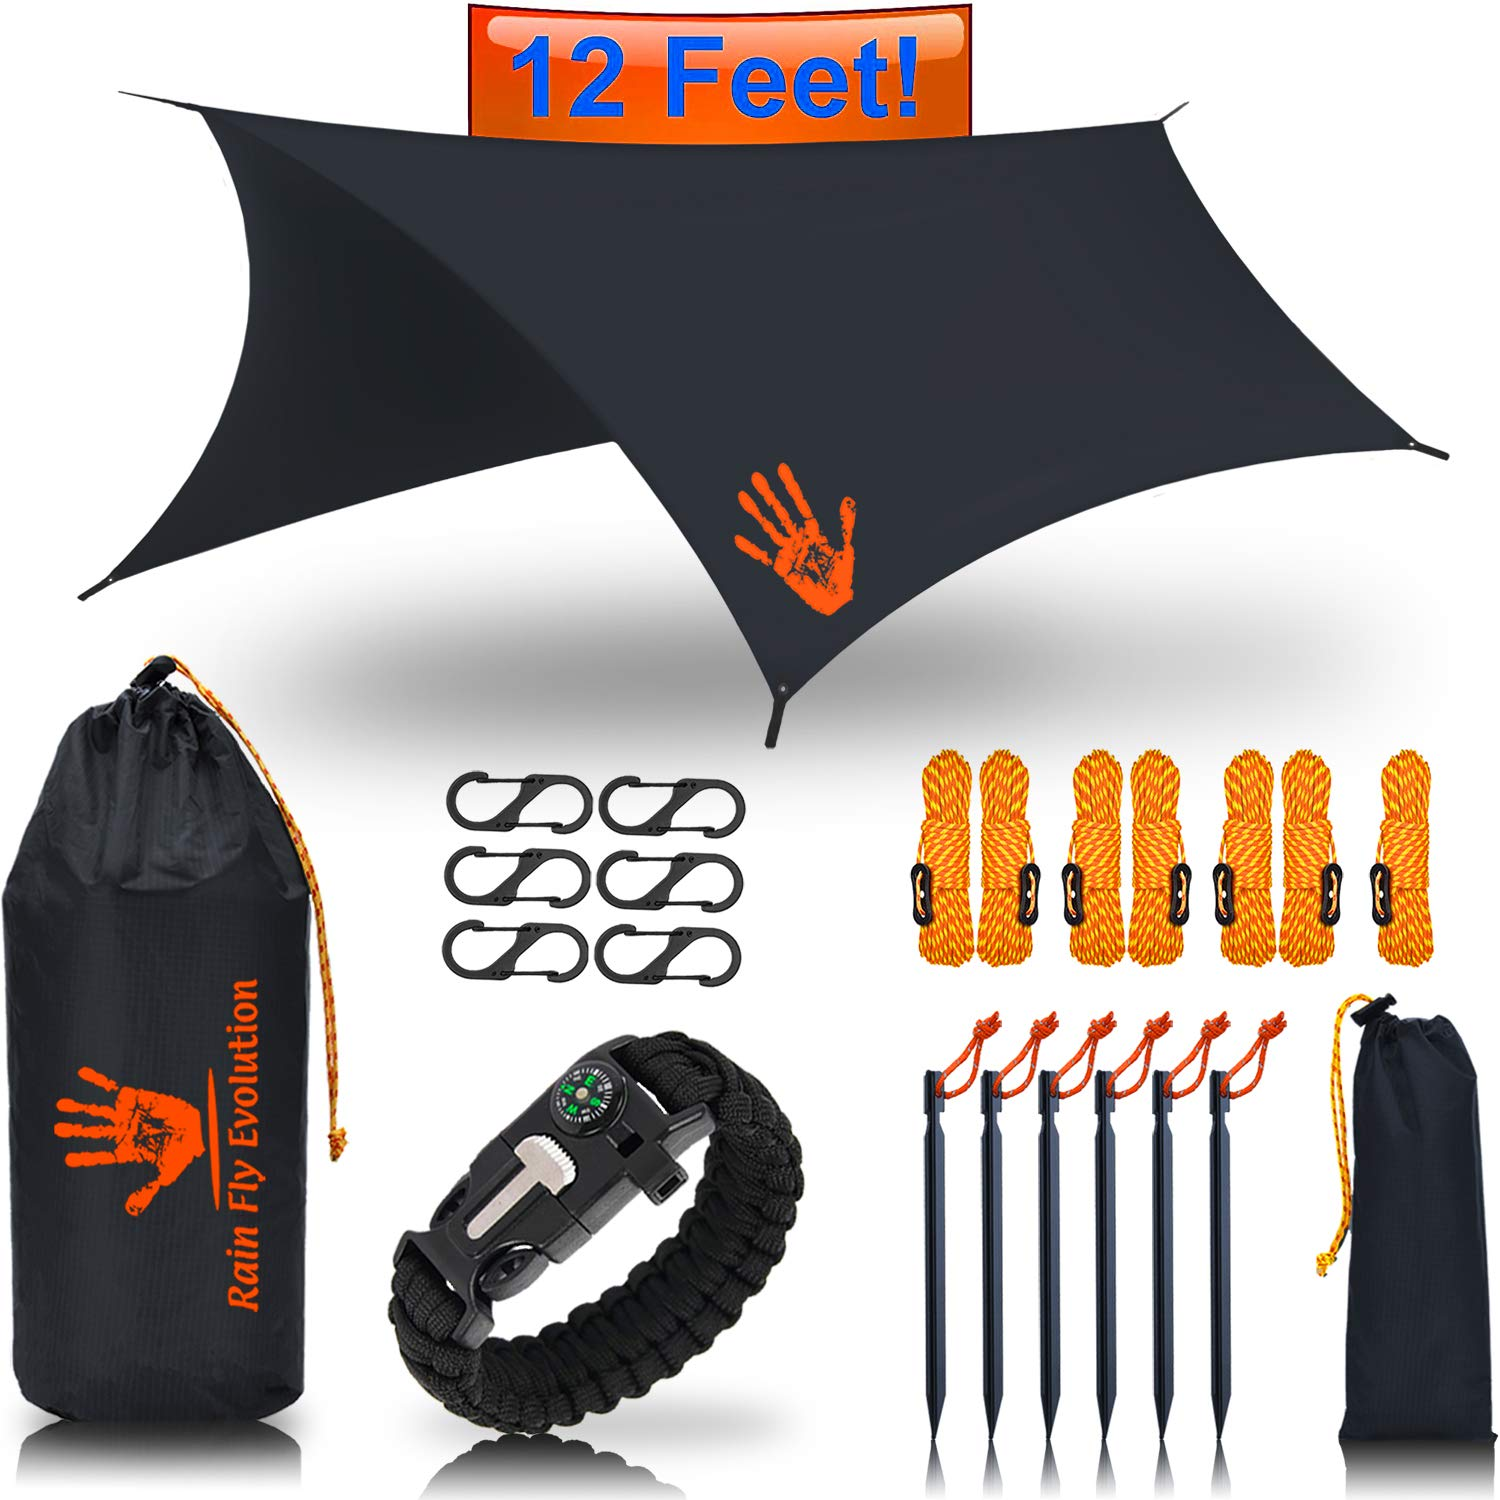 RainFlyEvolution 12 x 10 ft Hammock Waterproof RAIN Fly Tent TARP & Survival Bracelet Kit - Lightweight - Backpacker Approved - Diamond Ripstop Nylon - Perfect Hammock Shelter Sunshade for Hiking by Best Choice Products